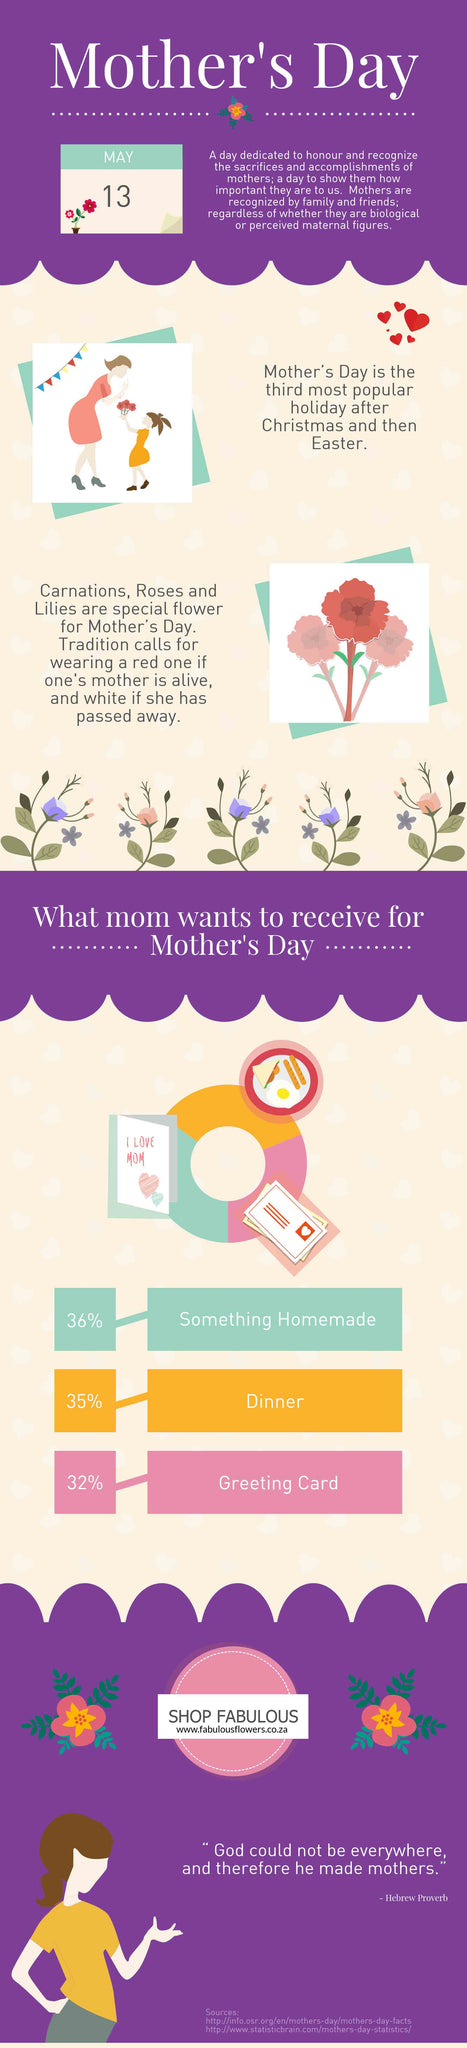 Flowers and Gifts for Mother's Day Cape Town South Africa